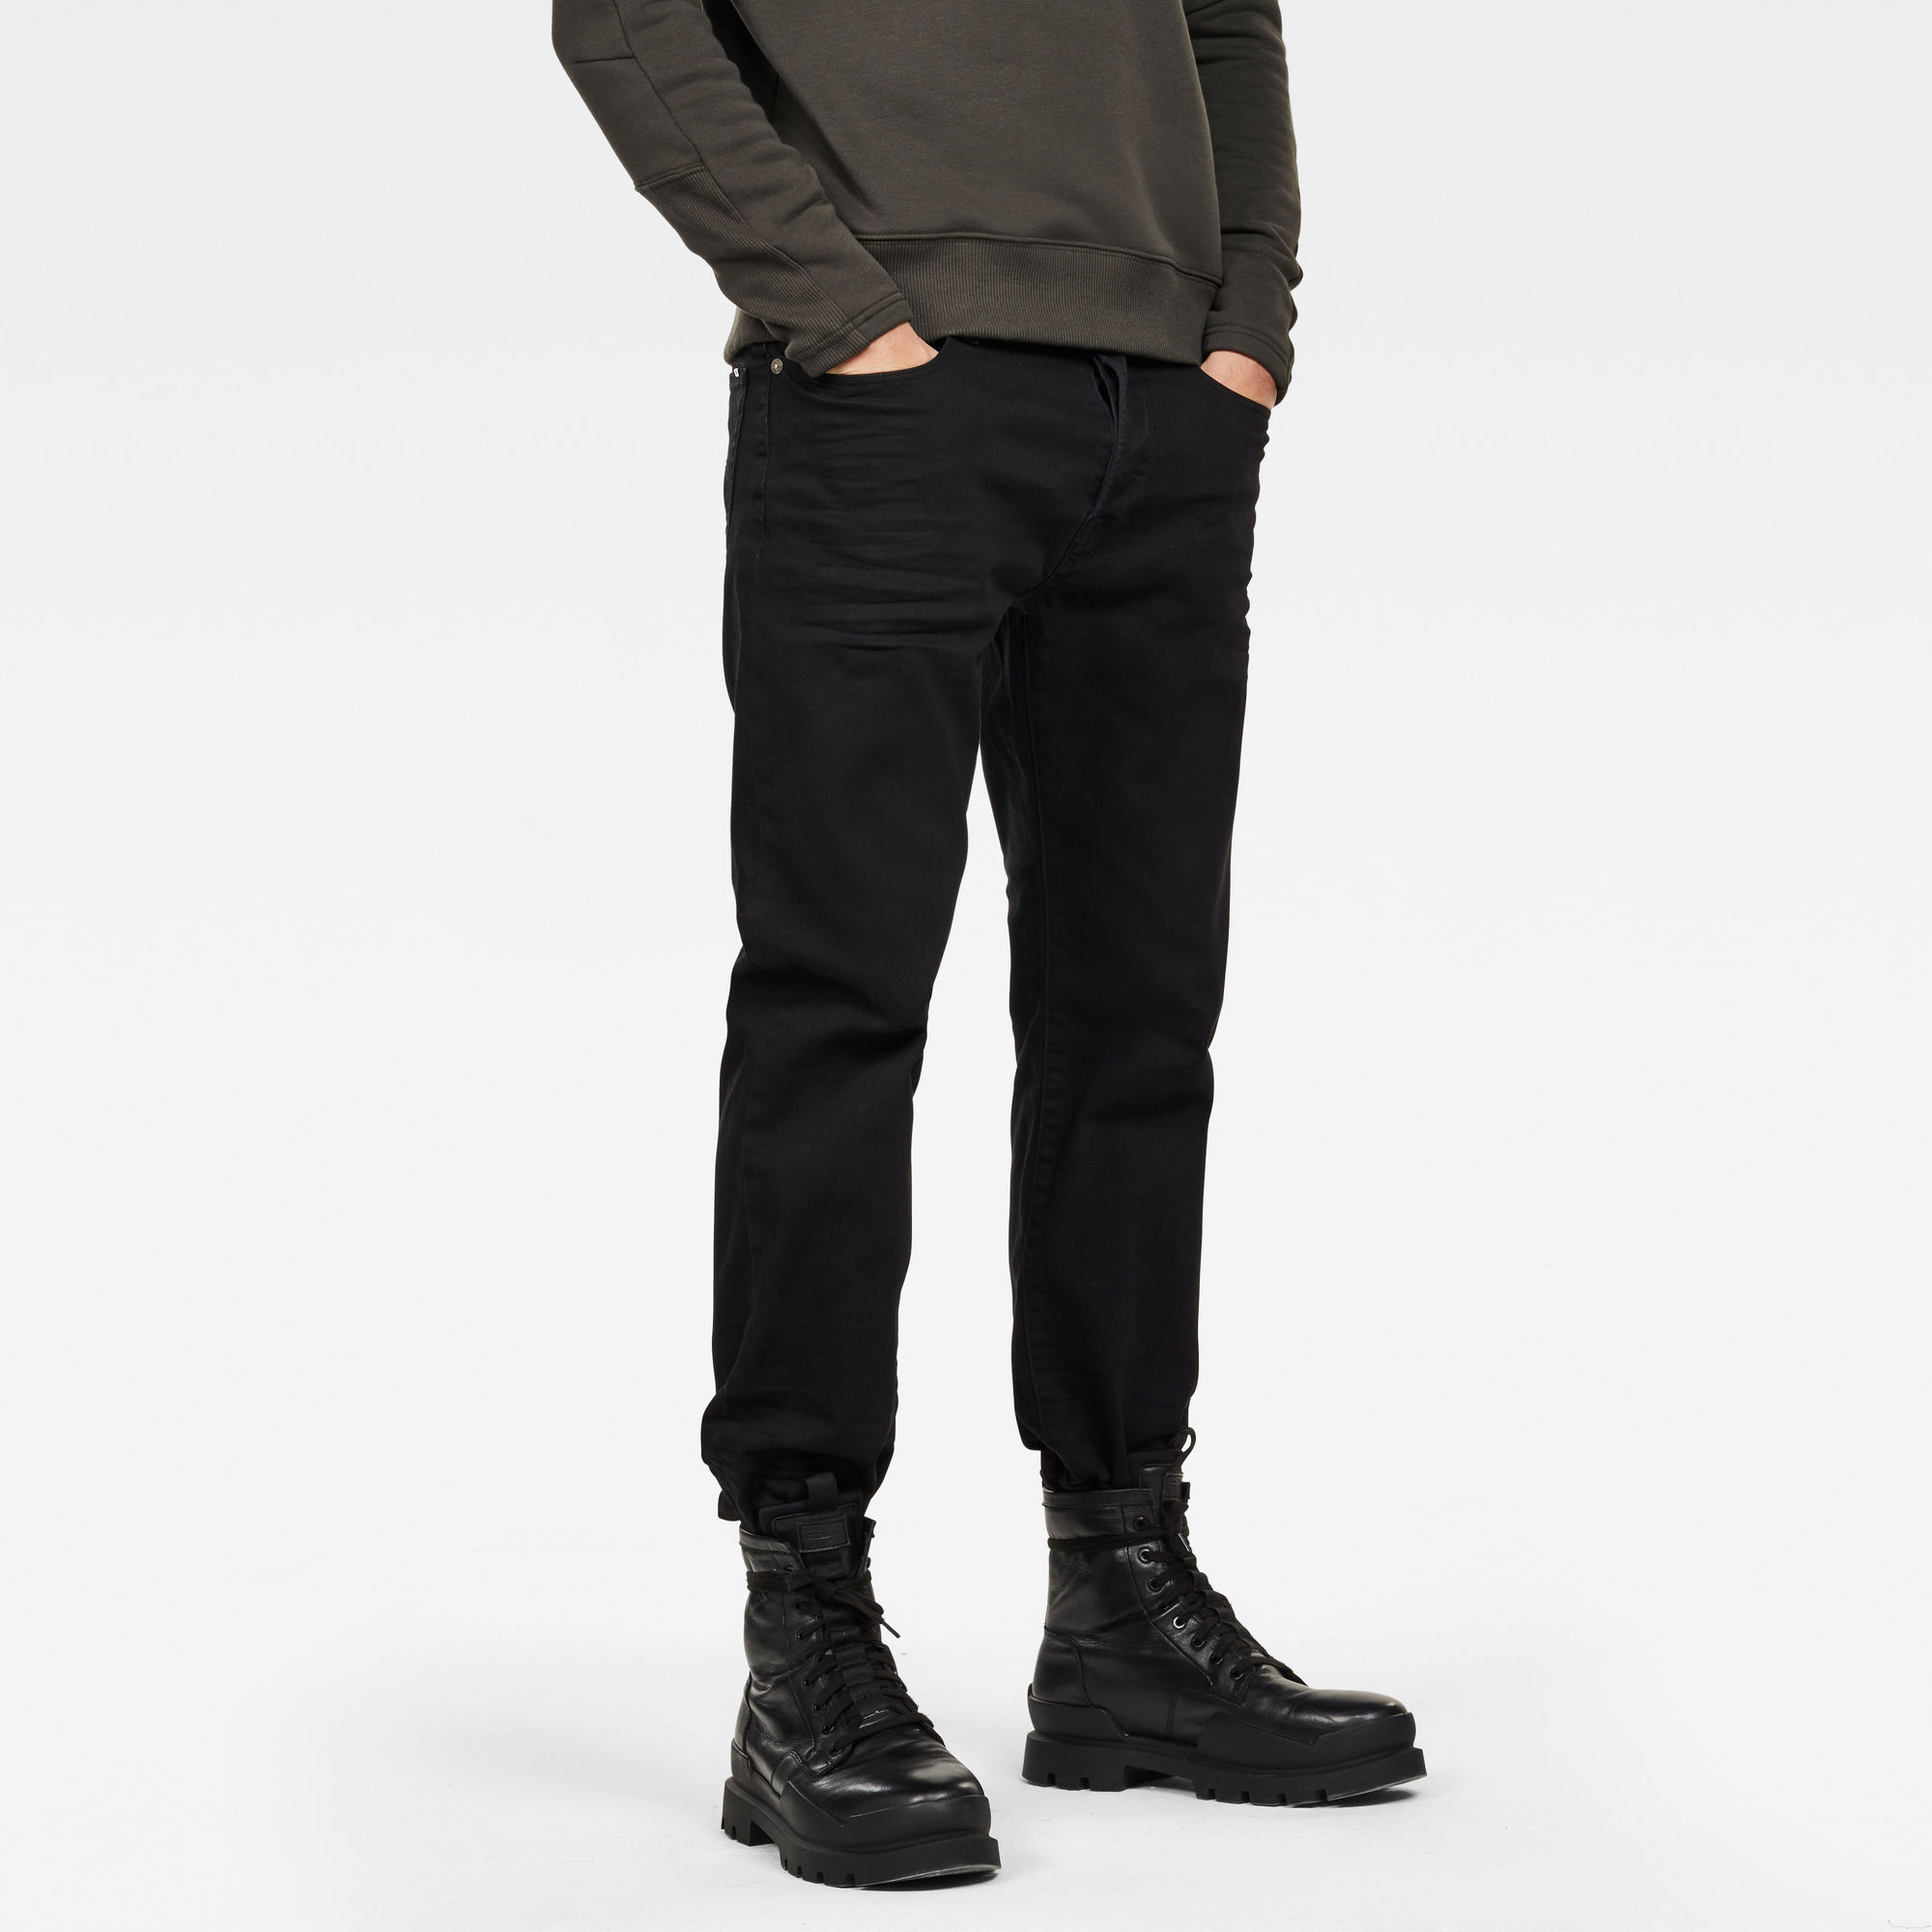 Image of G Star Raw 3301 Ann Cropped Loose Colored Jeans